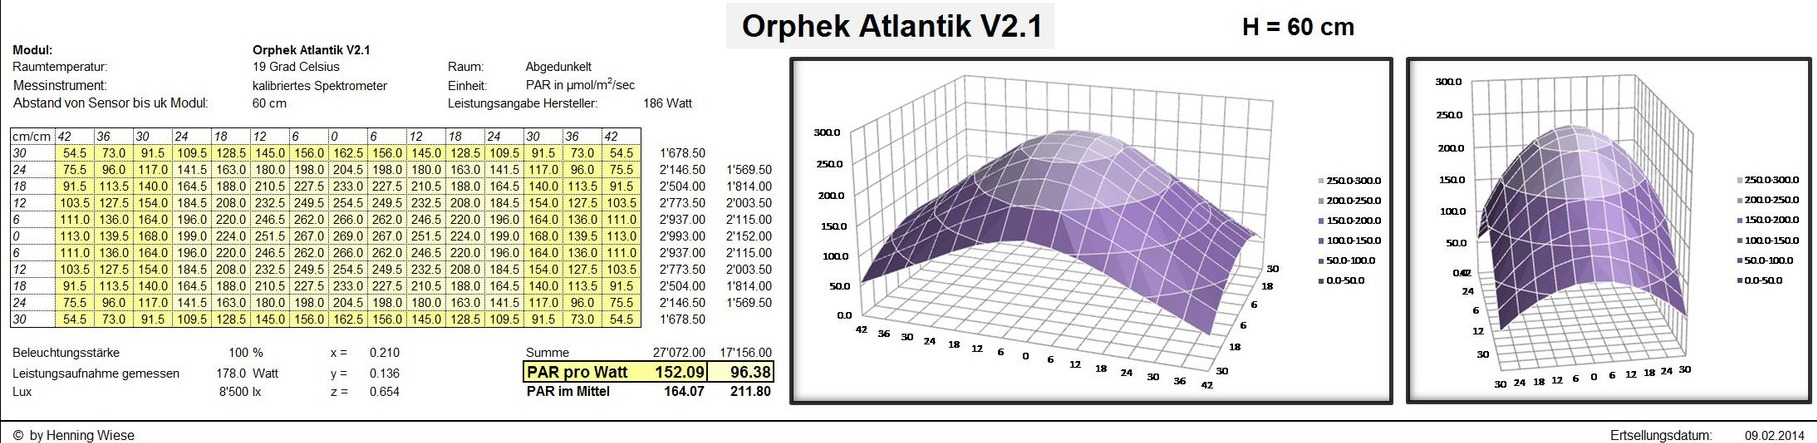 Orphek Atlantik V2.1 LED نور ثابت-PAR MAP-PAR در هر وات